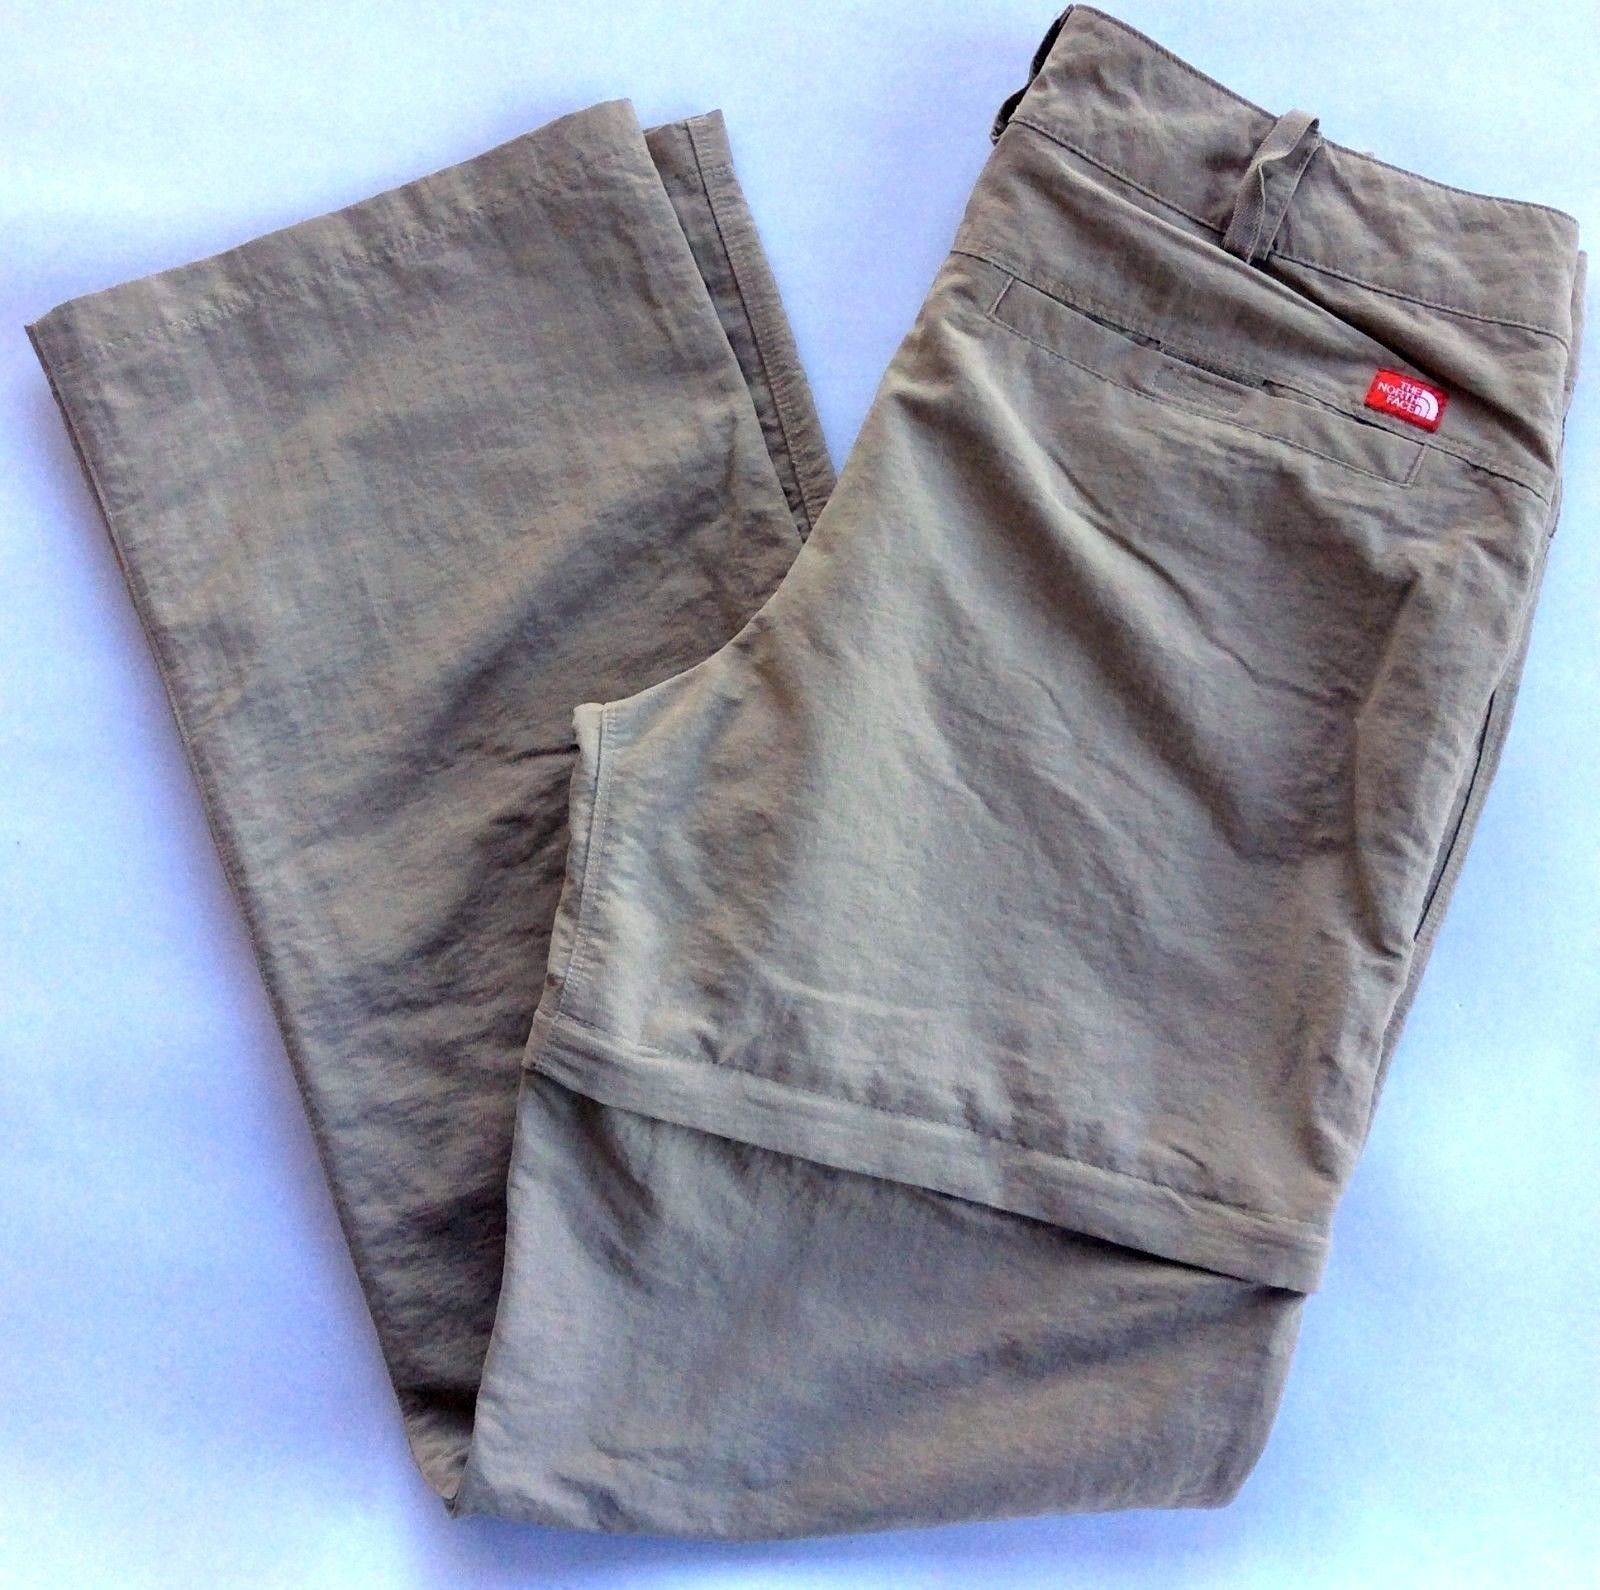 e728cb9c6 The North Face Convertible Pants Womens Size and 50 similar items. 57